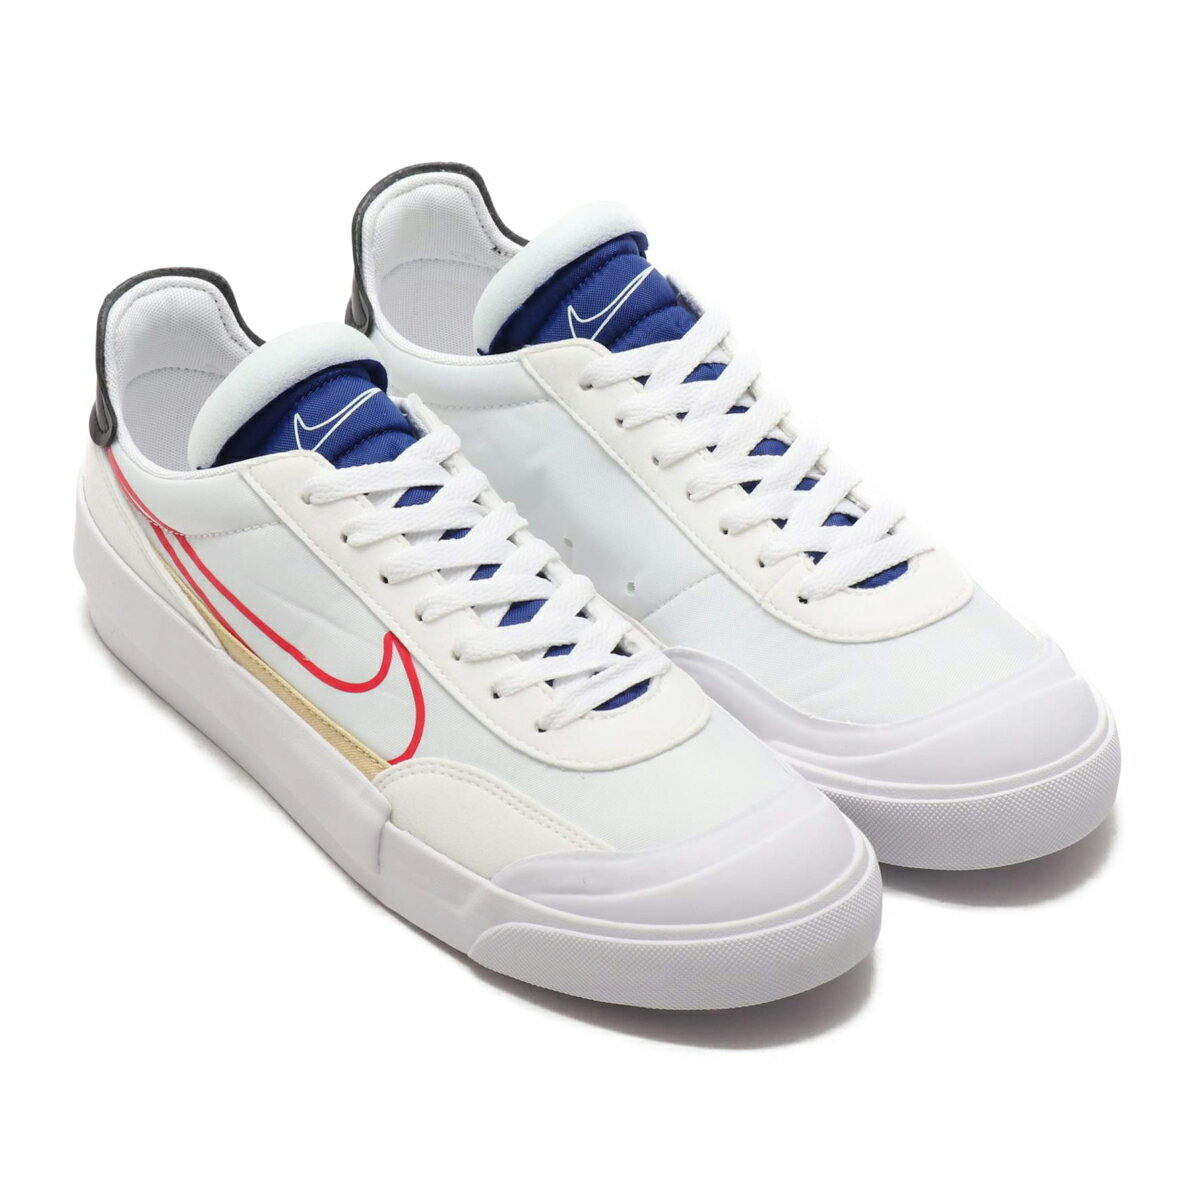 NIKE DROP-TYPE HBR(ナイキ ドロップ タイプ HBR)WHITE/UNIVERSITY RED-DEEP ROYAL BLUE【メンズ スニーカー】20SP-I atpss20画像